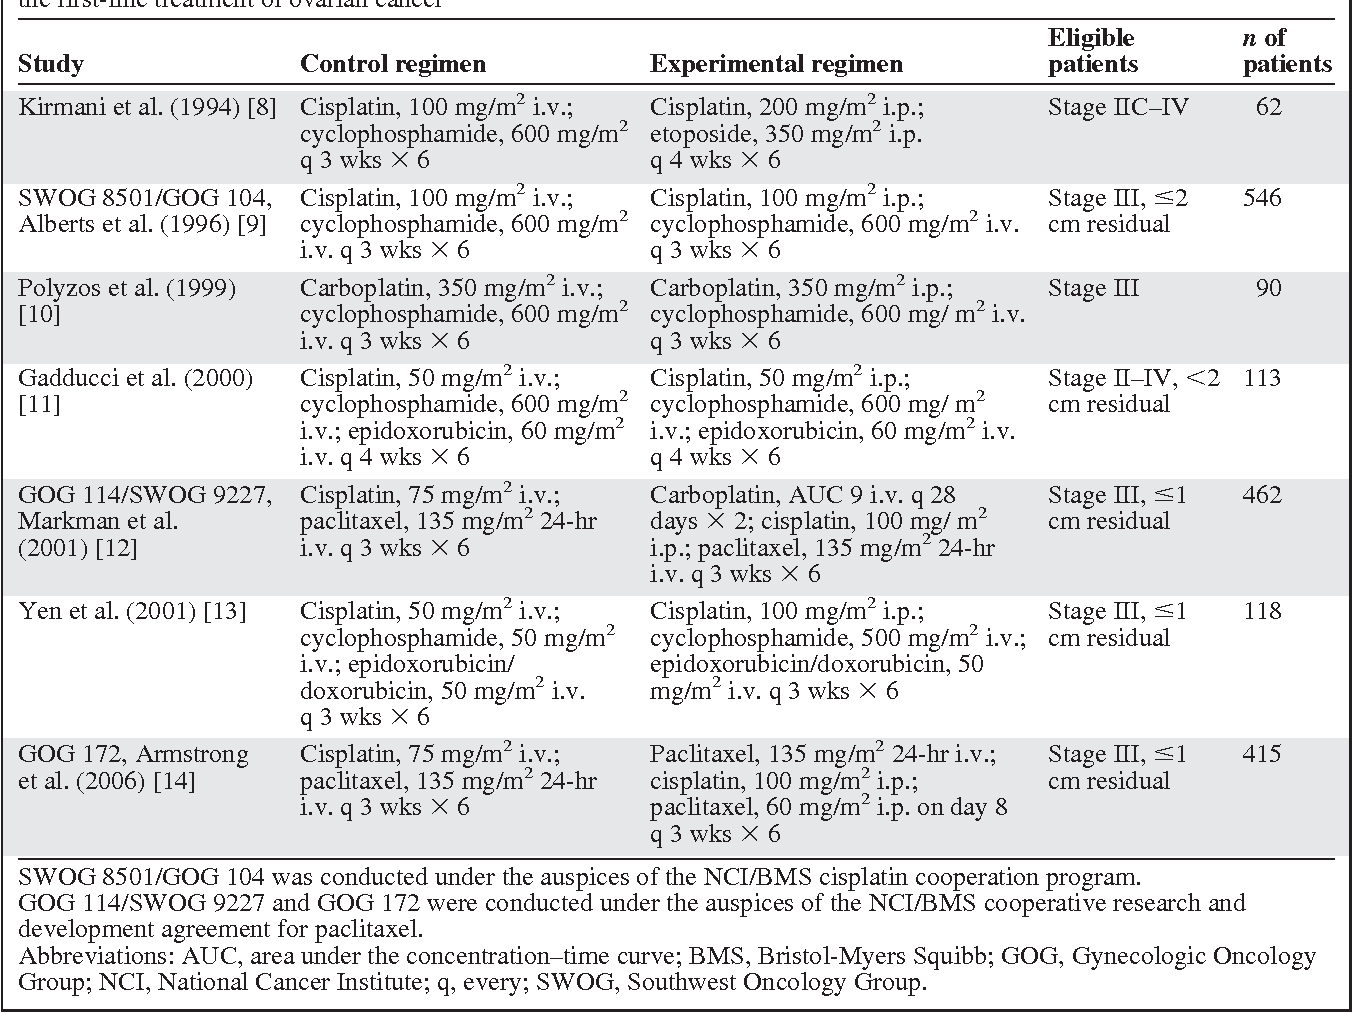 Table 1 From Intraperitoneal Chemotherapy For Women With Epithelial Ovarian Cancer Semantic Scholar